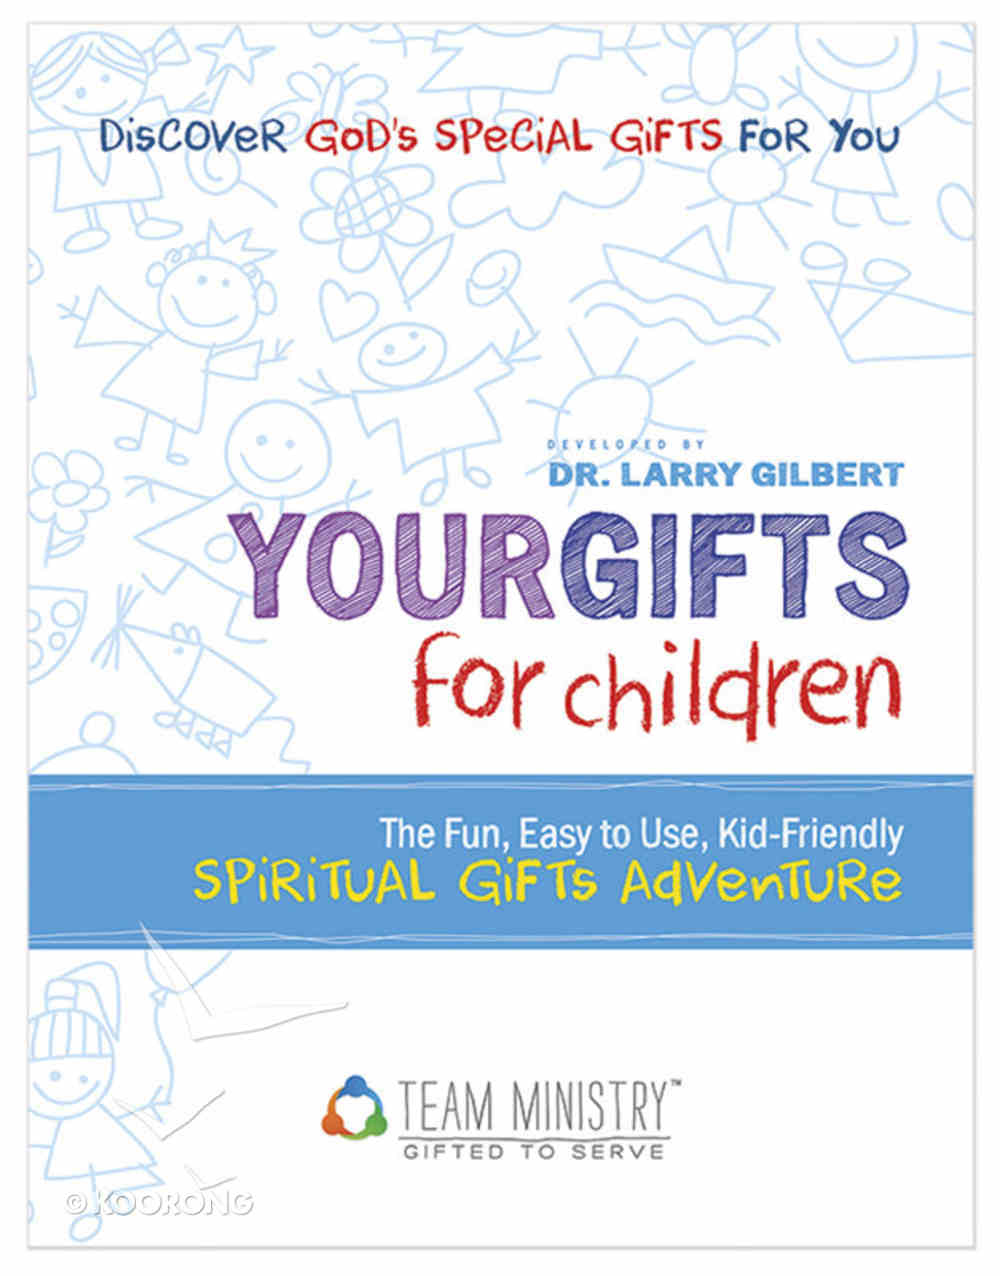 Your Gifts For Children: Spiritual Gifts Adventure (50-pack) Pack